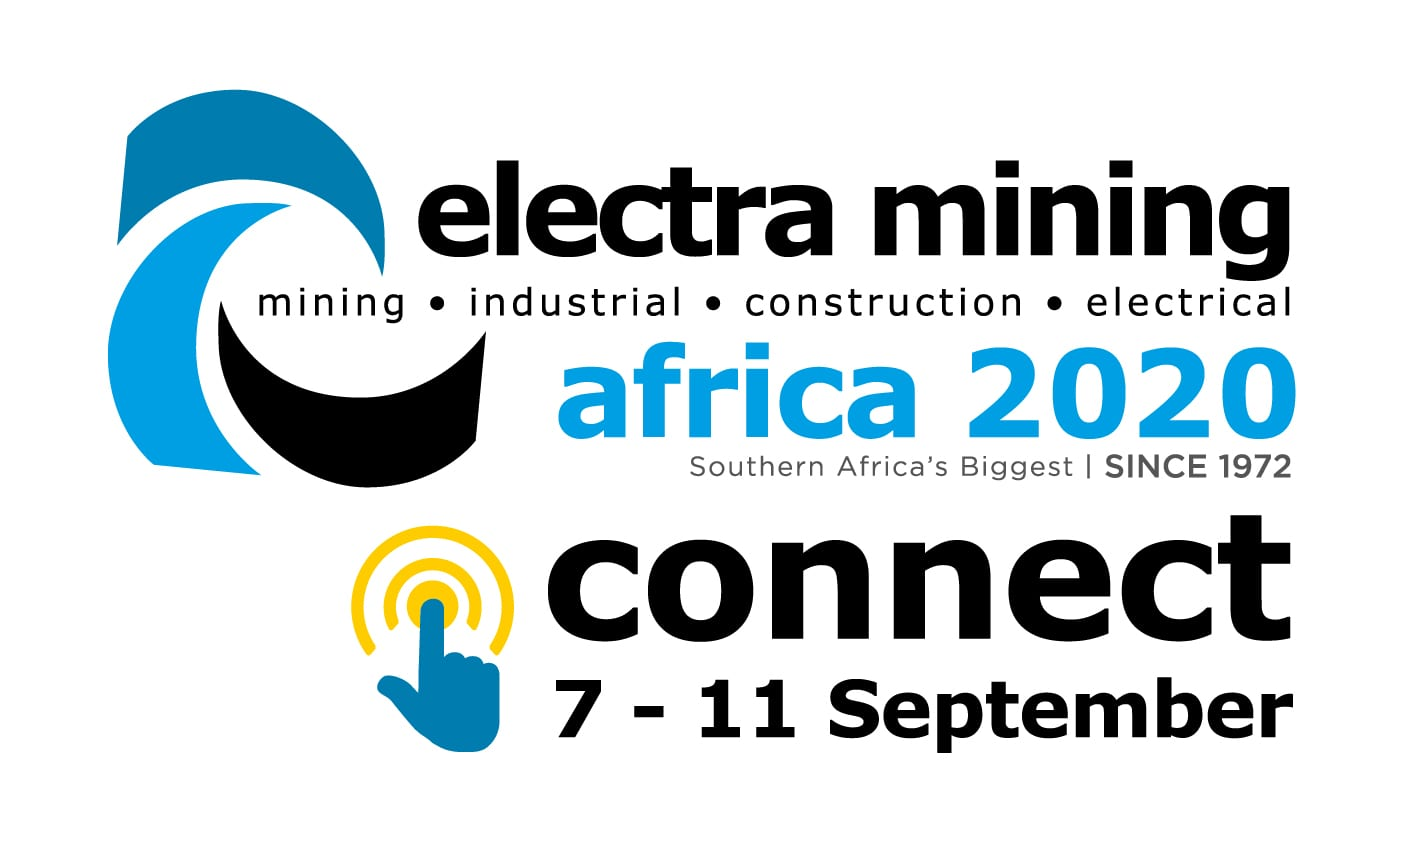 Introducing Electra Mining Africa 2020 Connect